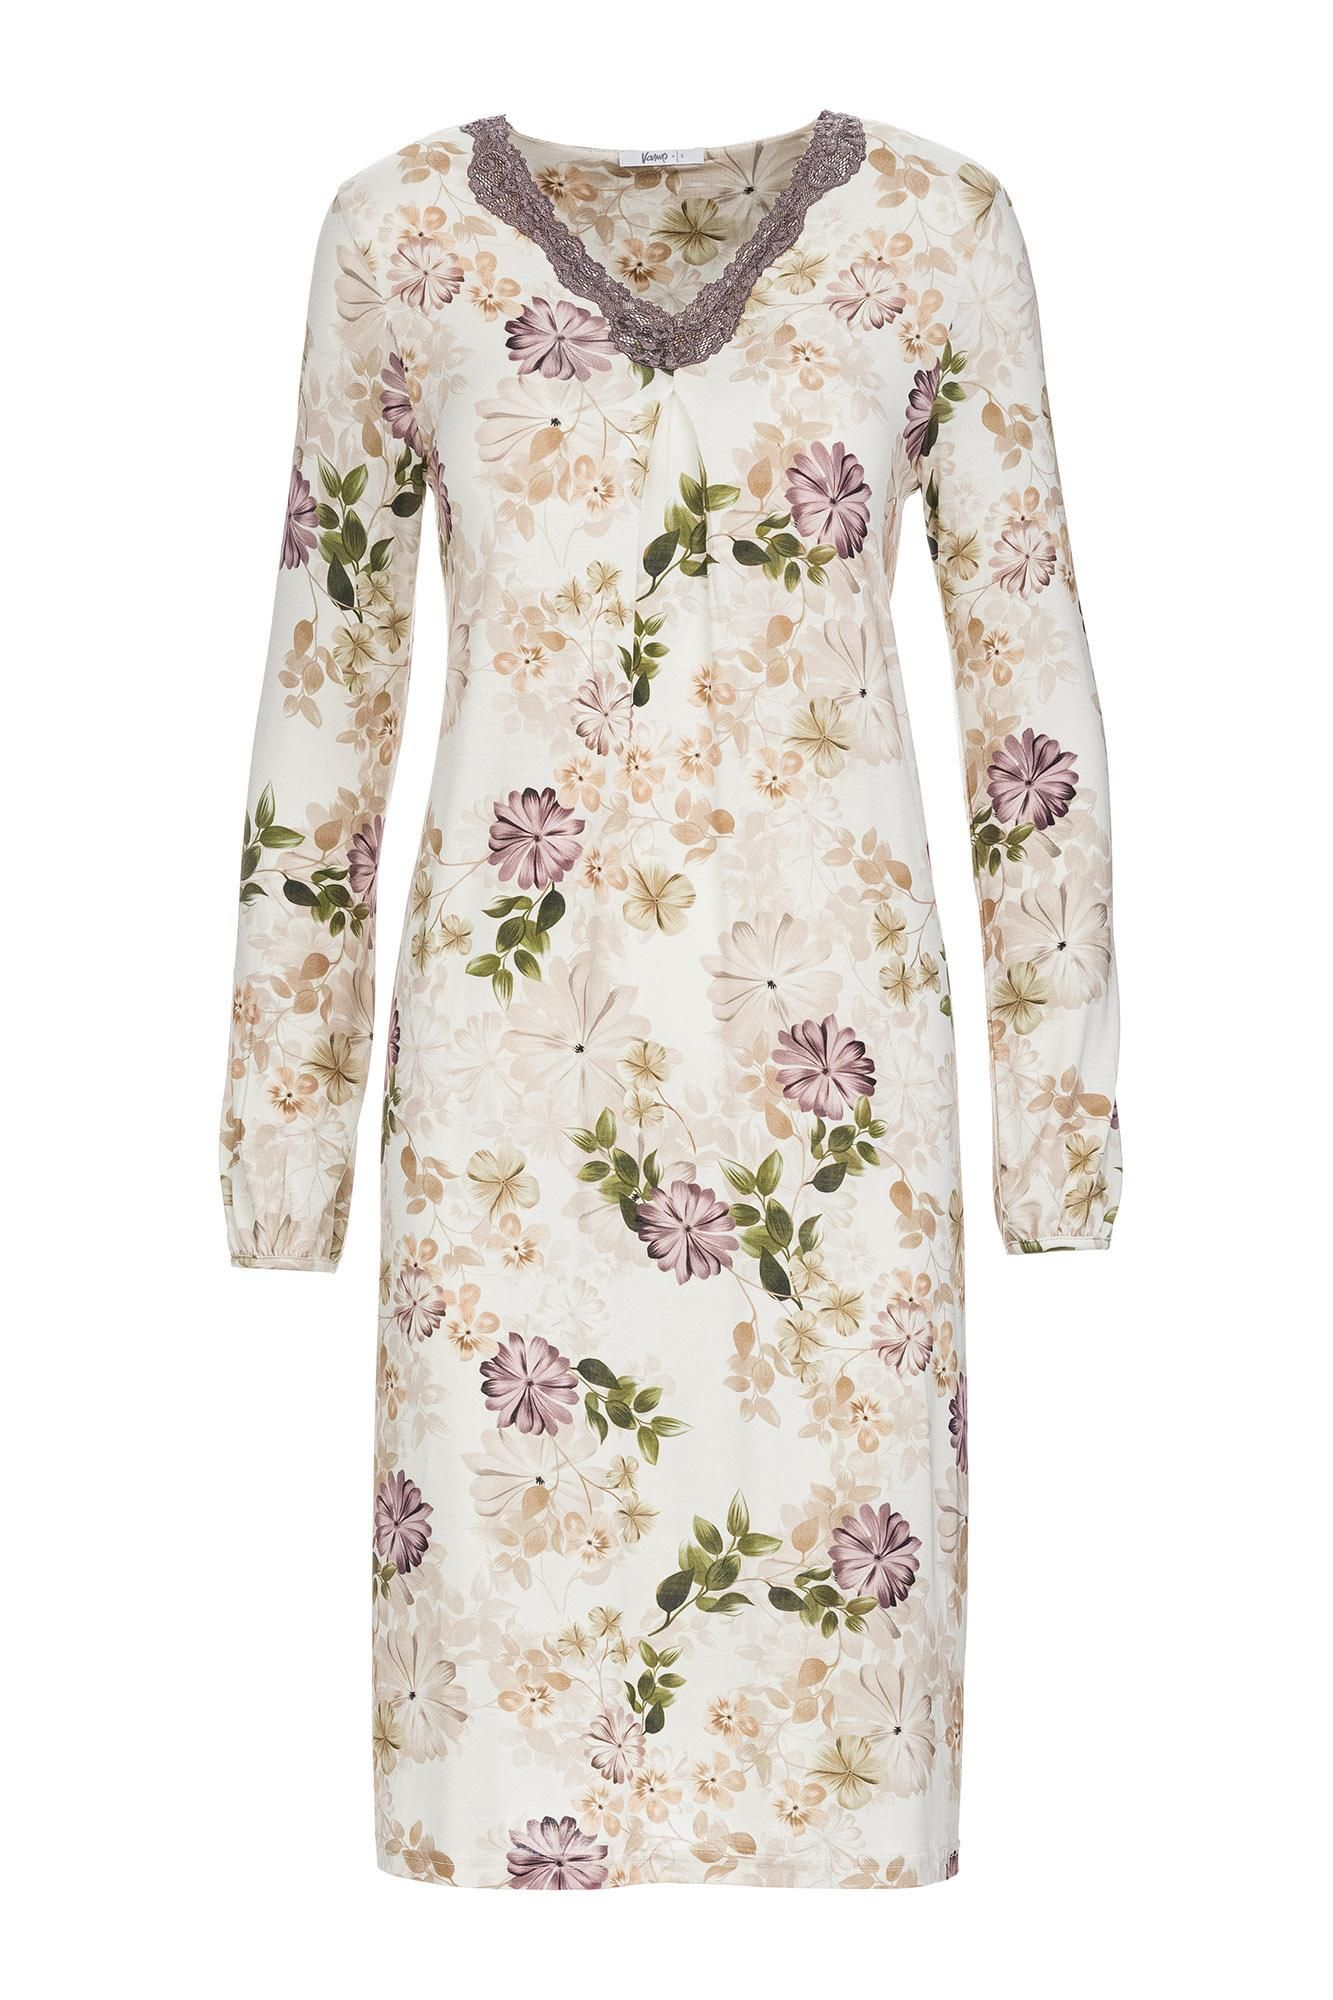 Women's Floral Nightgown